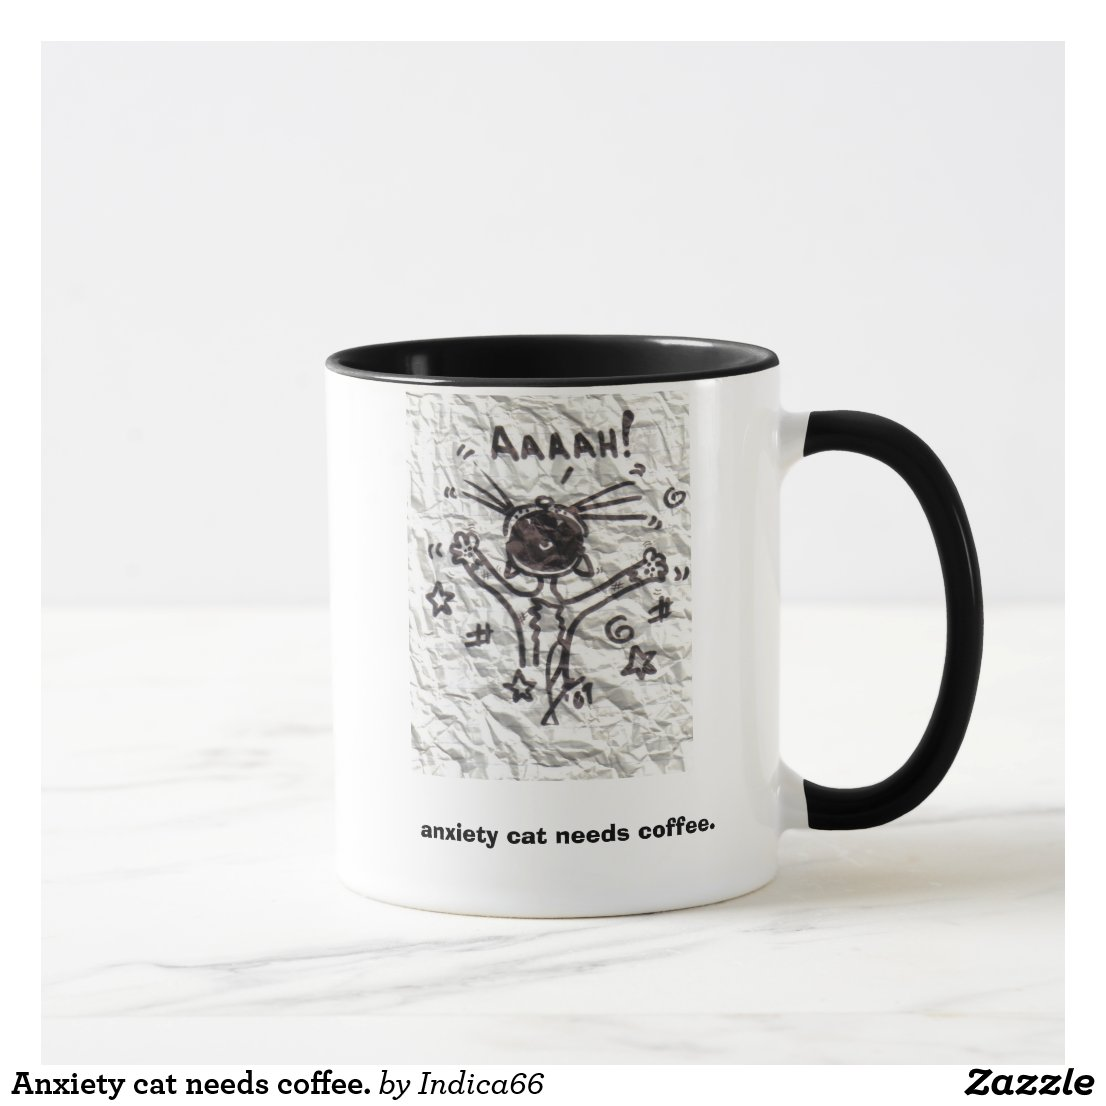 Anxiety cat needs coffee. mug